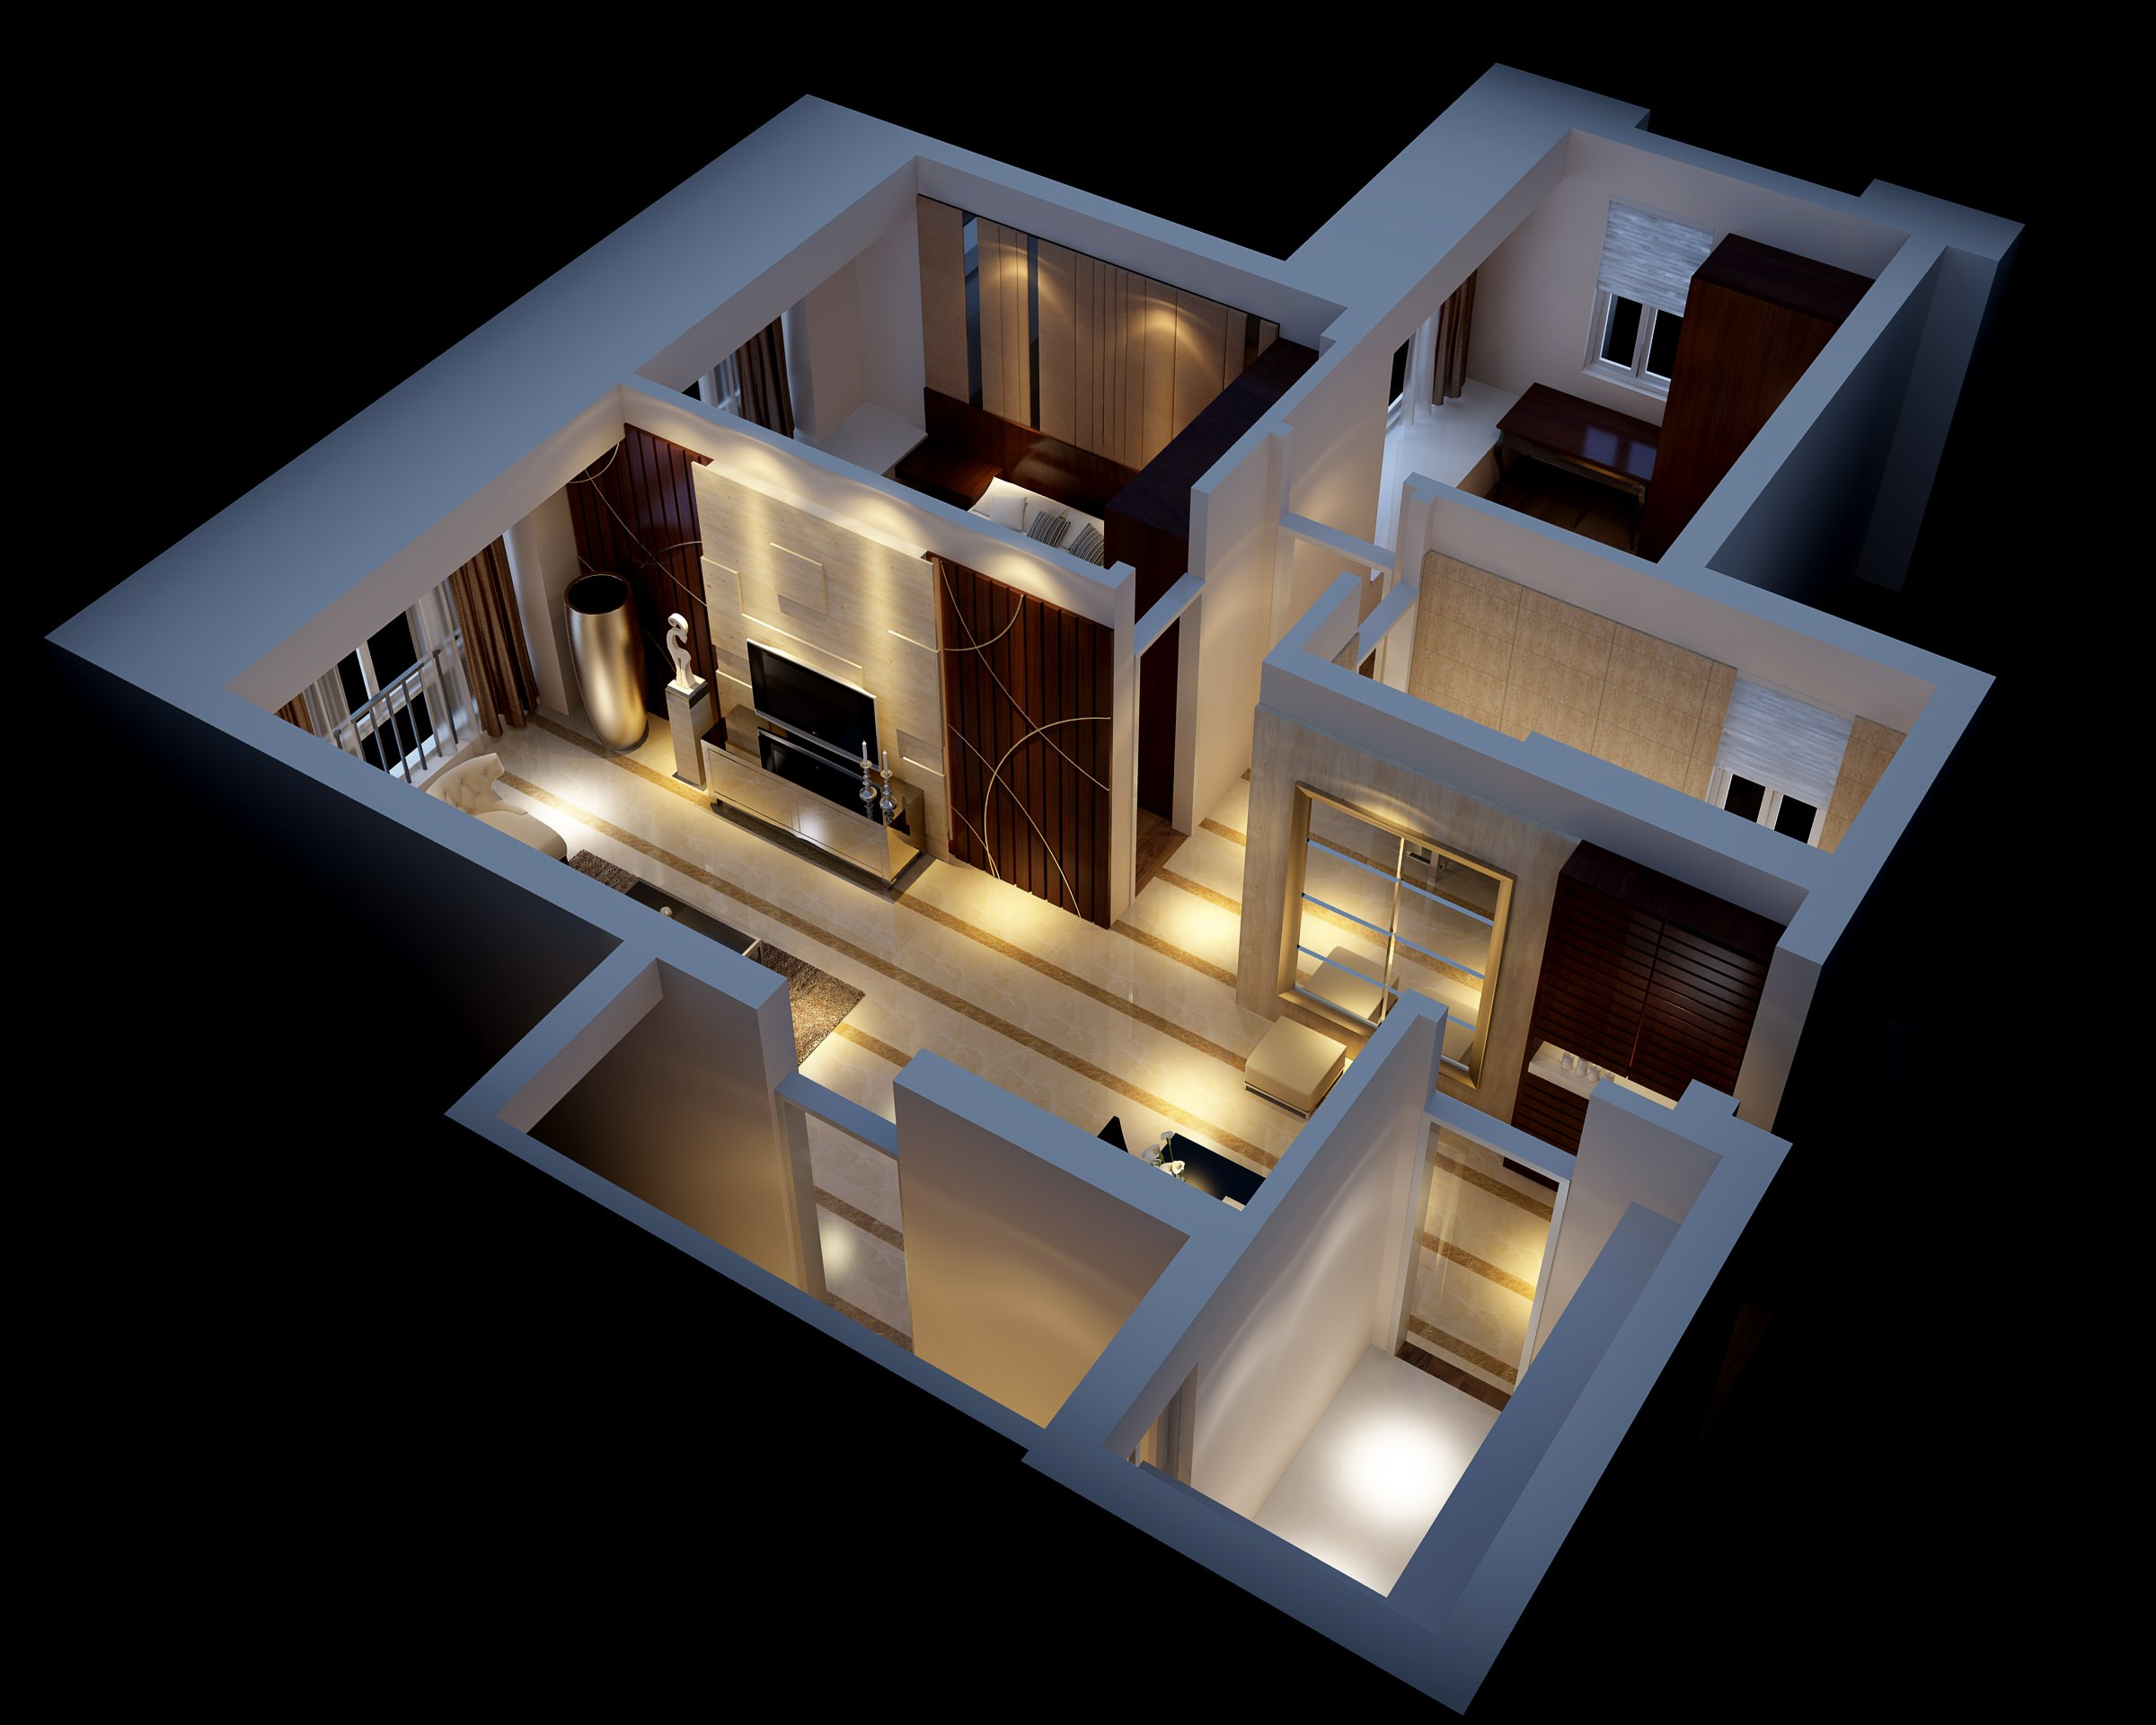 Modern house interior fully furnished 3d model max for New model house interior design